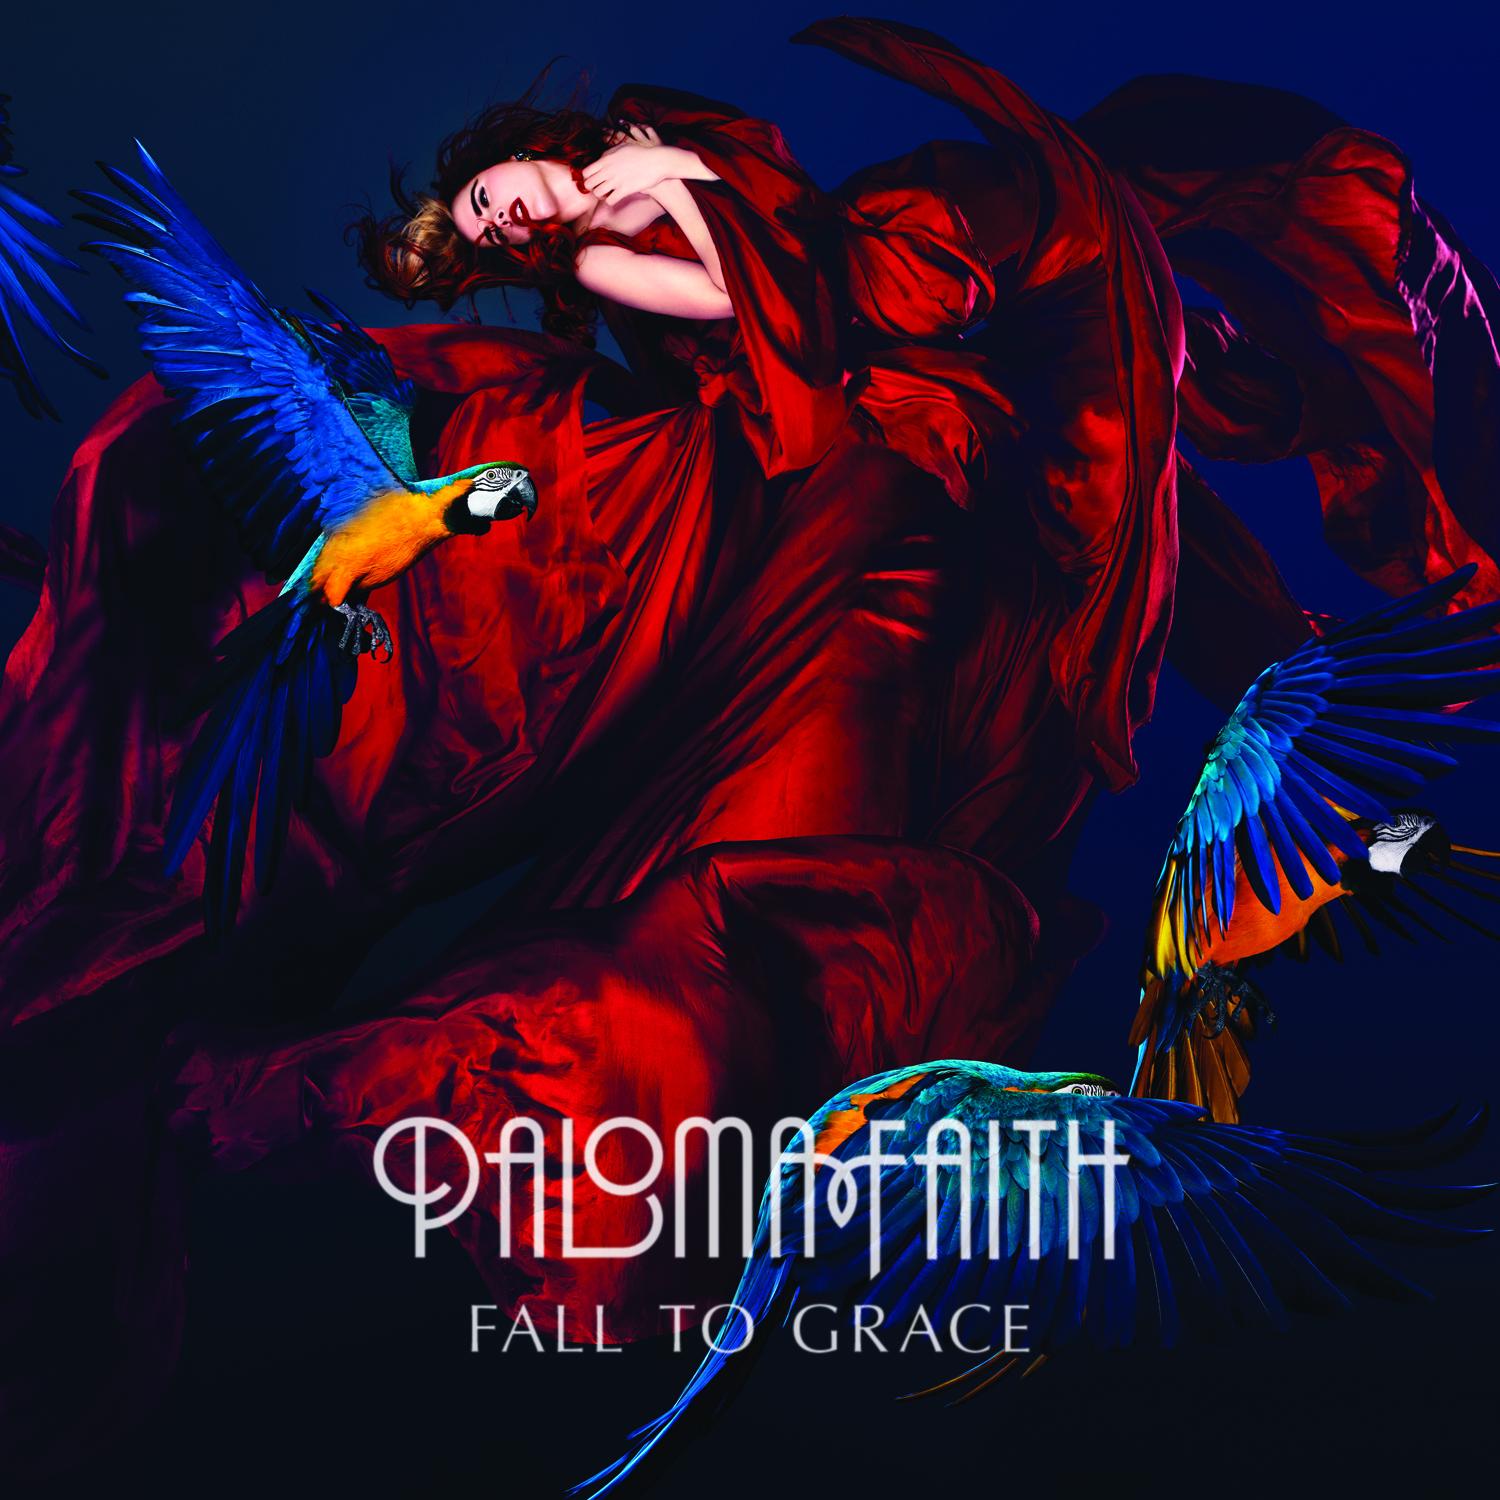 http://3.bp.blogspot.com/-a786nO_JN2Y/T-r9EriFTqI/AAAAAAAADhM/I-QC0Q43WO4/s1600/Paloma+Faith+Fall+From+Grace.jpg